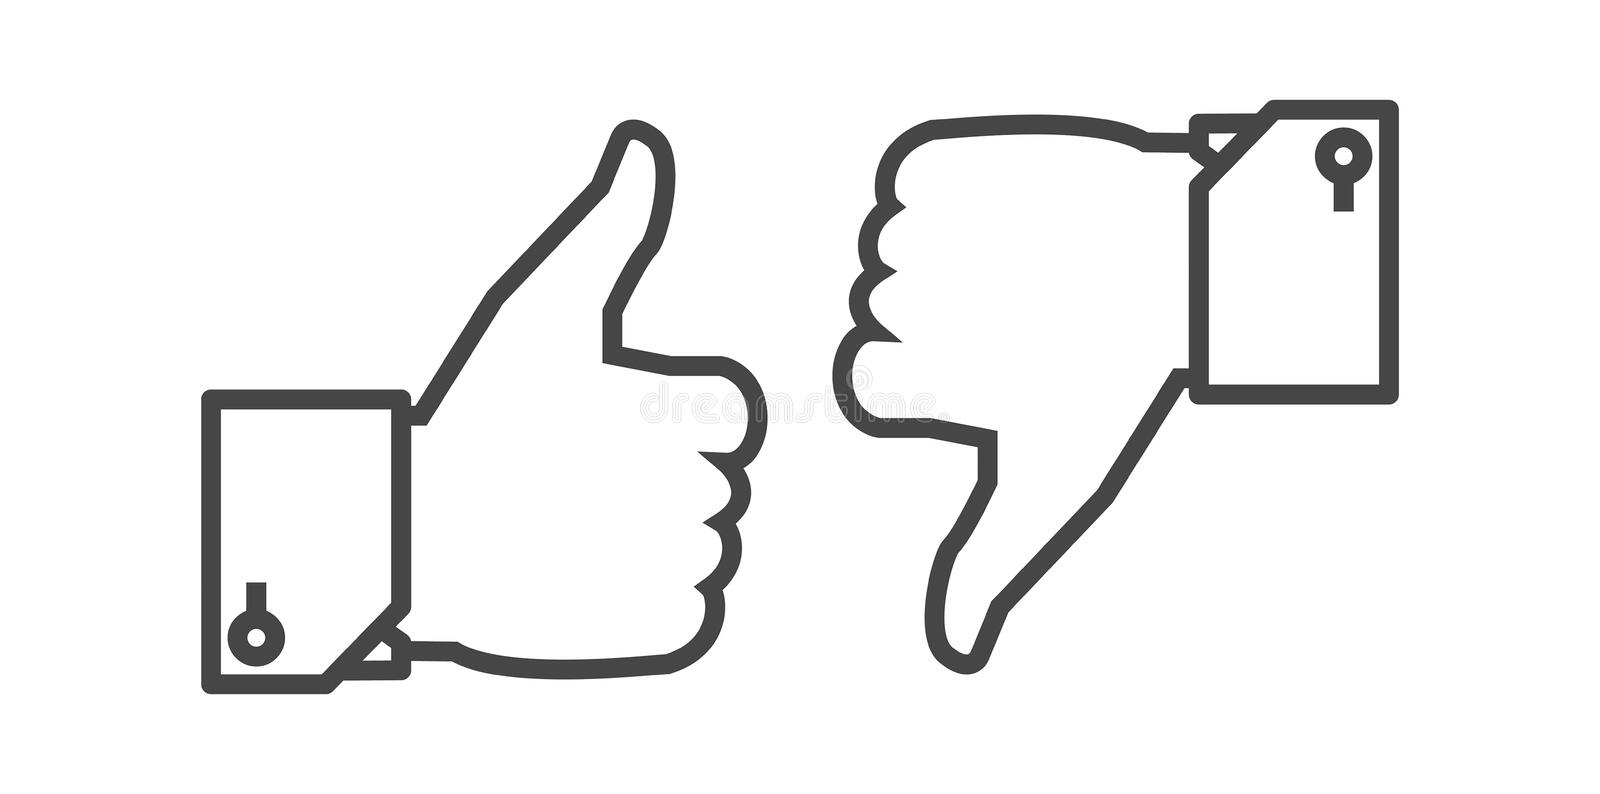 Like and Dislike button royalty free stock photos